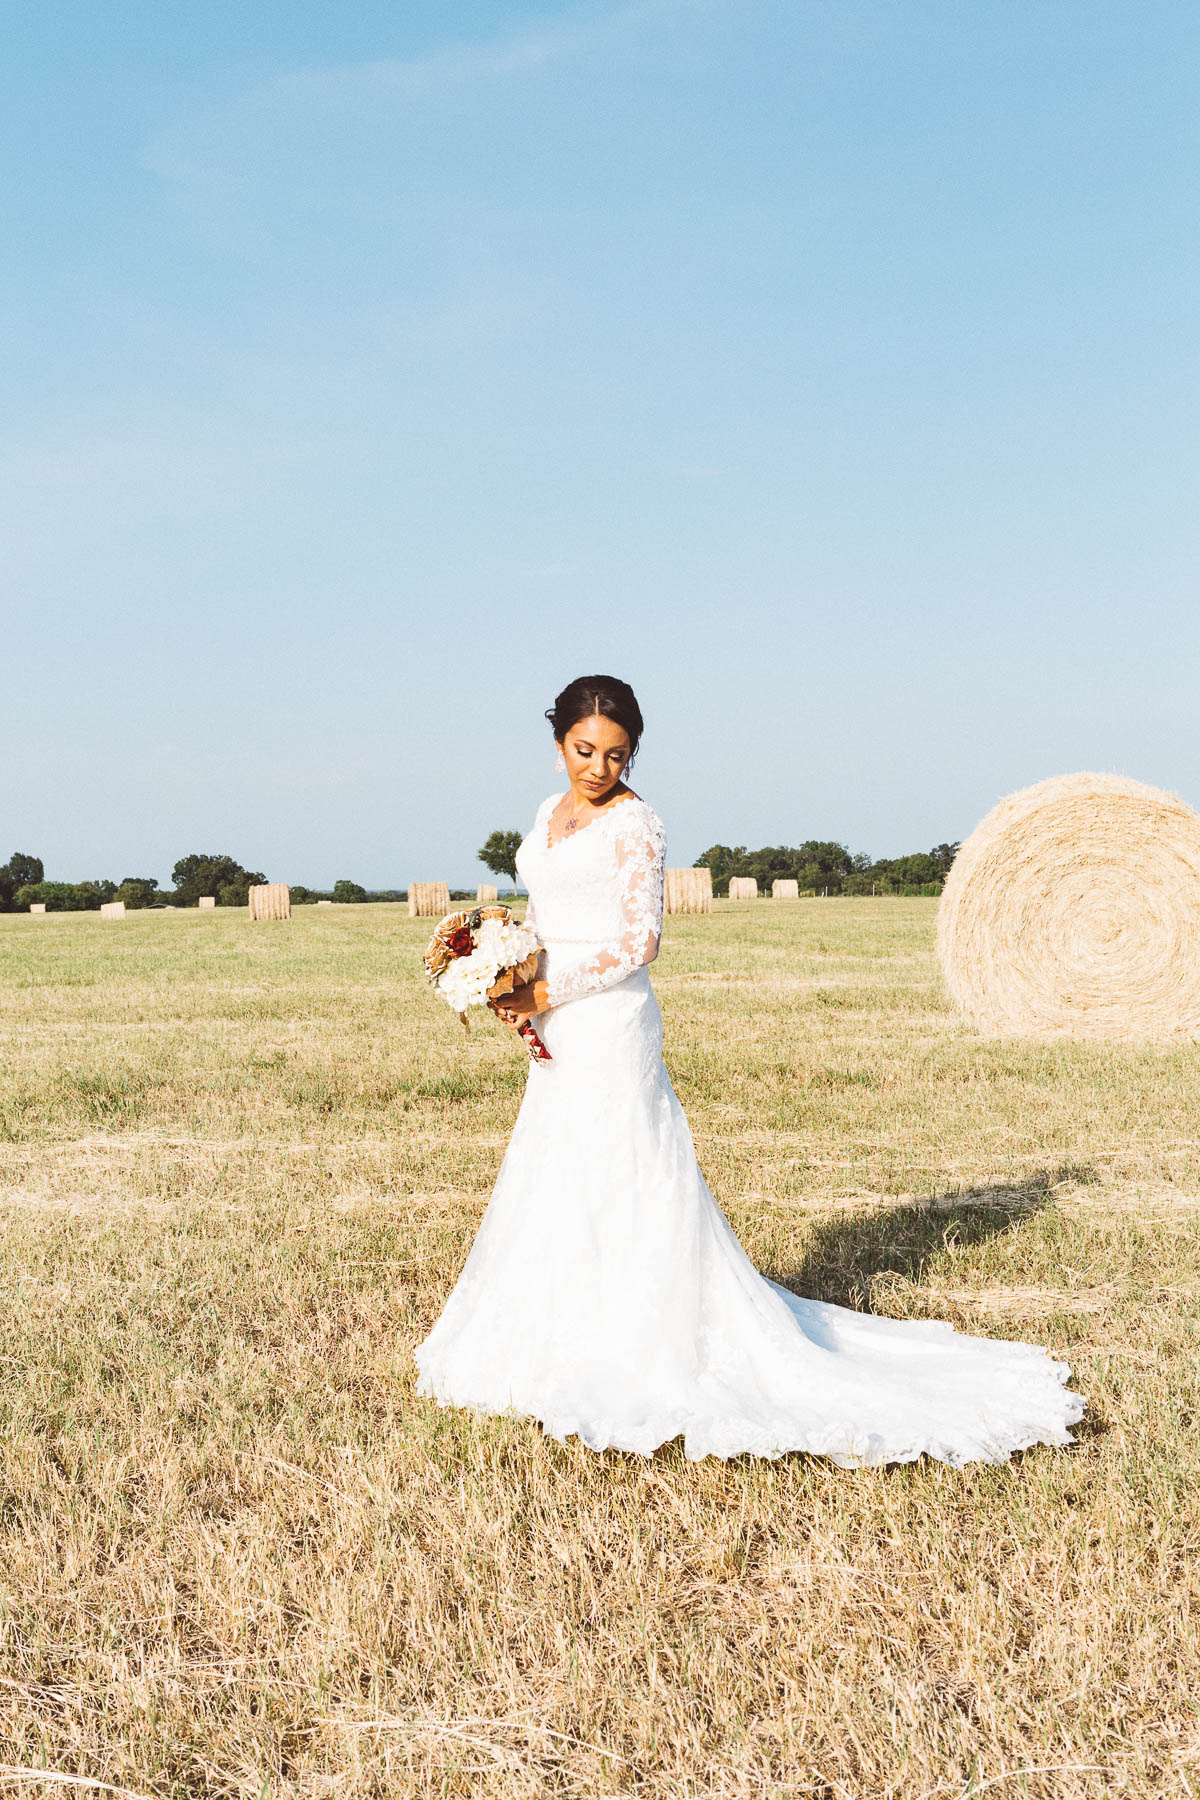 bride standing in field with hay bales Chappell Hill Texas